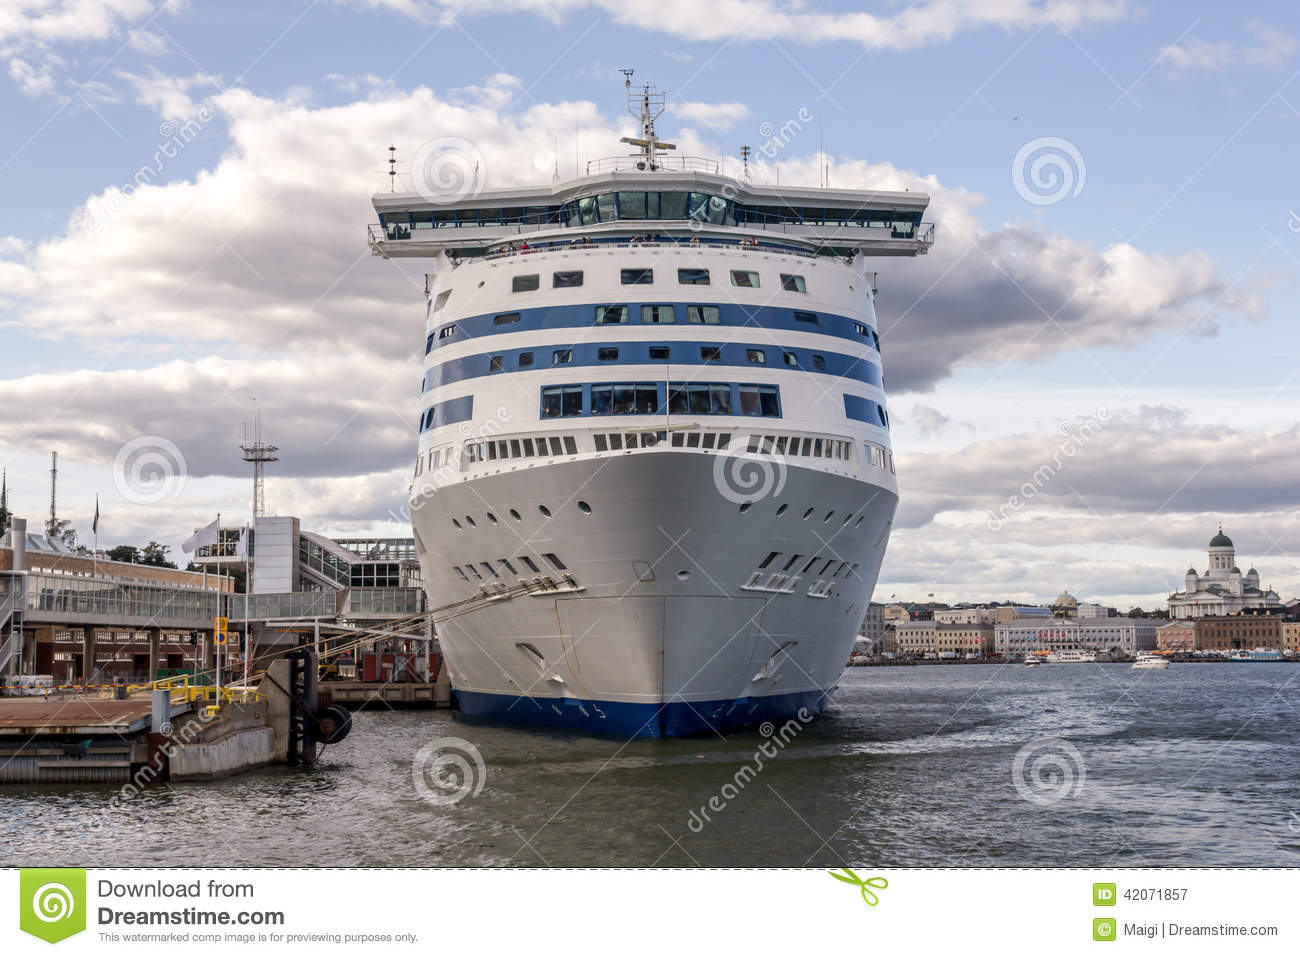 Download Cruise Ship stock image. Image of transportation, white - 42071857